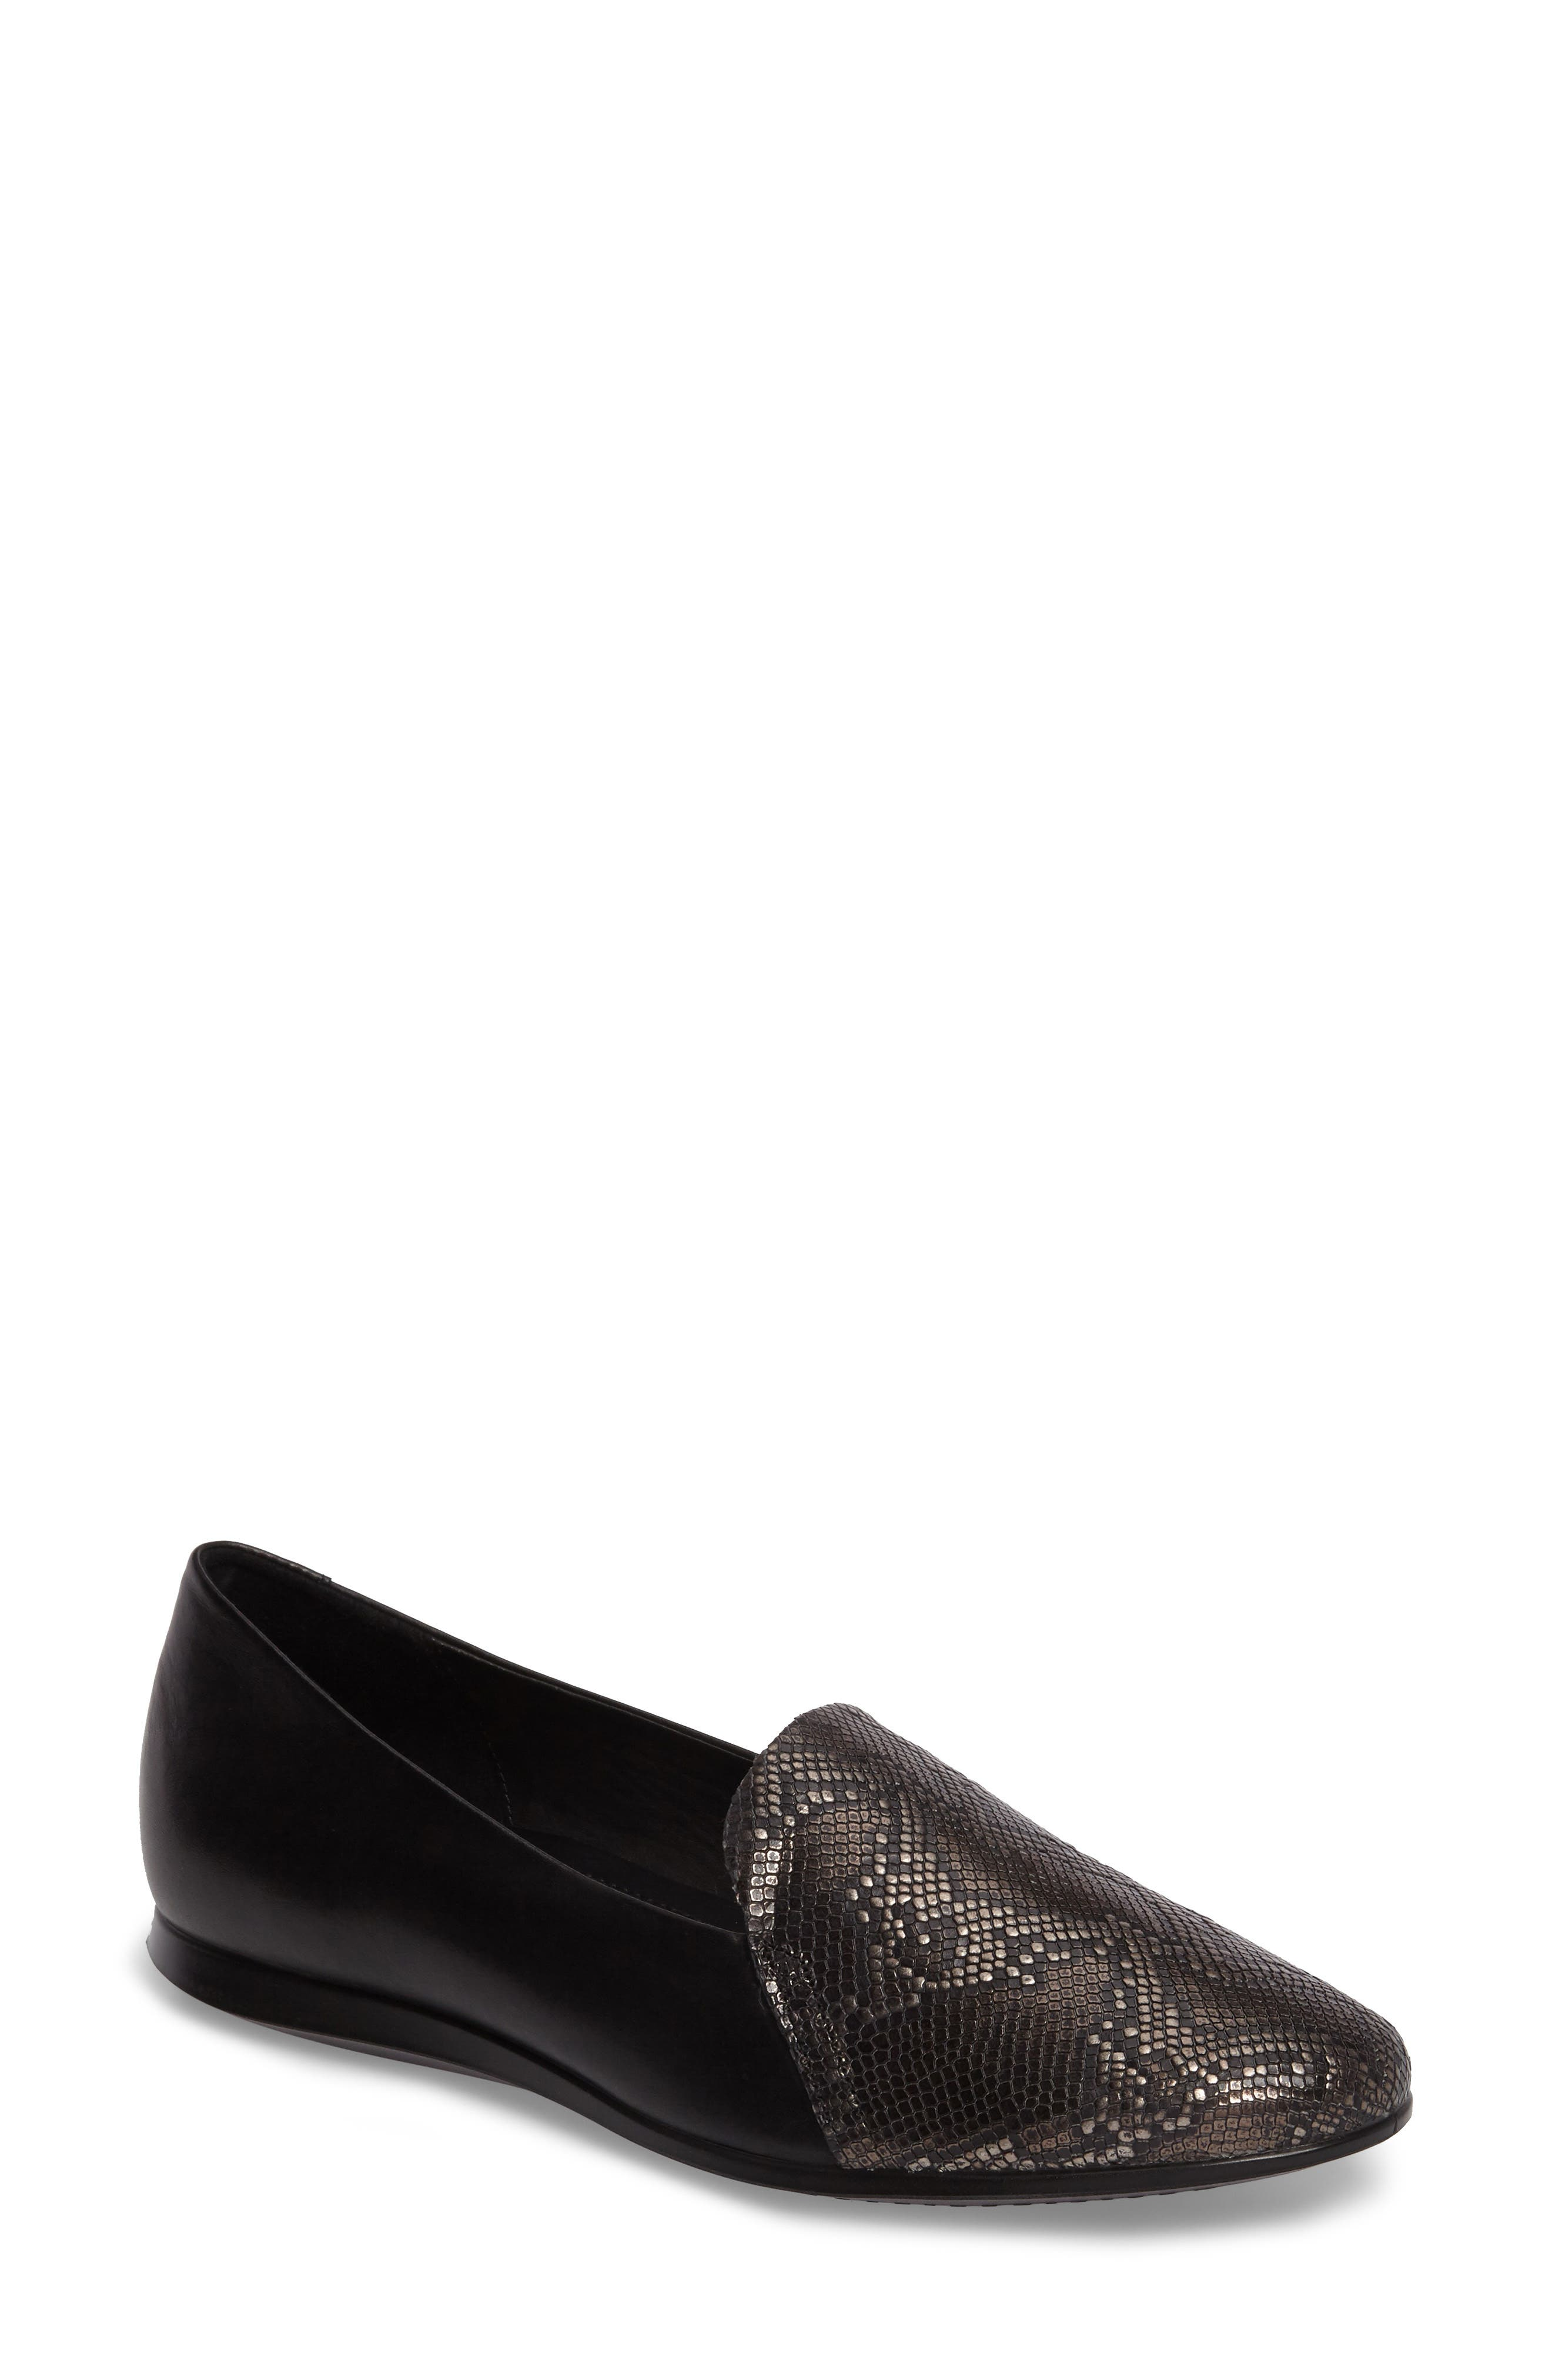 Touch 2.0 Scale Embossed Loafer Flat,                         Main,                         color, DARK SHADOW LEATHER